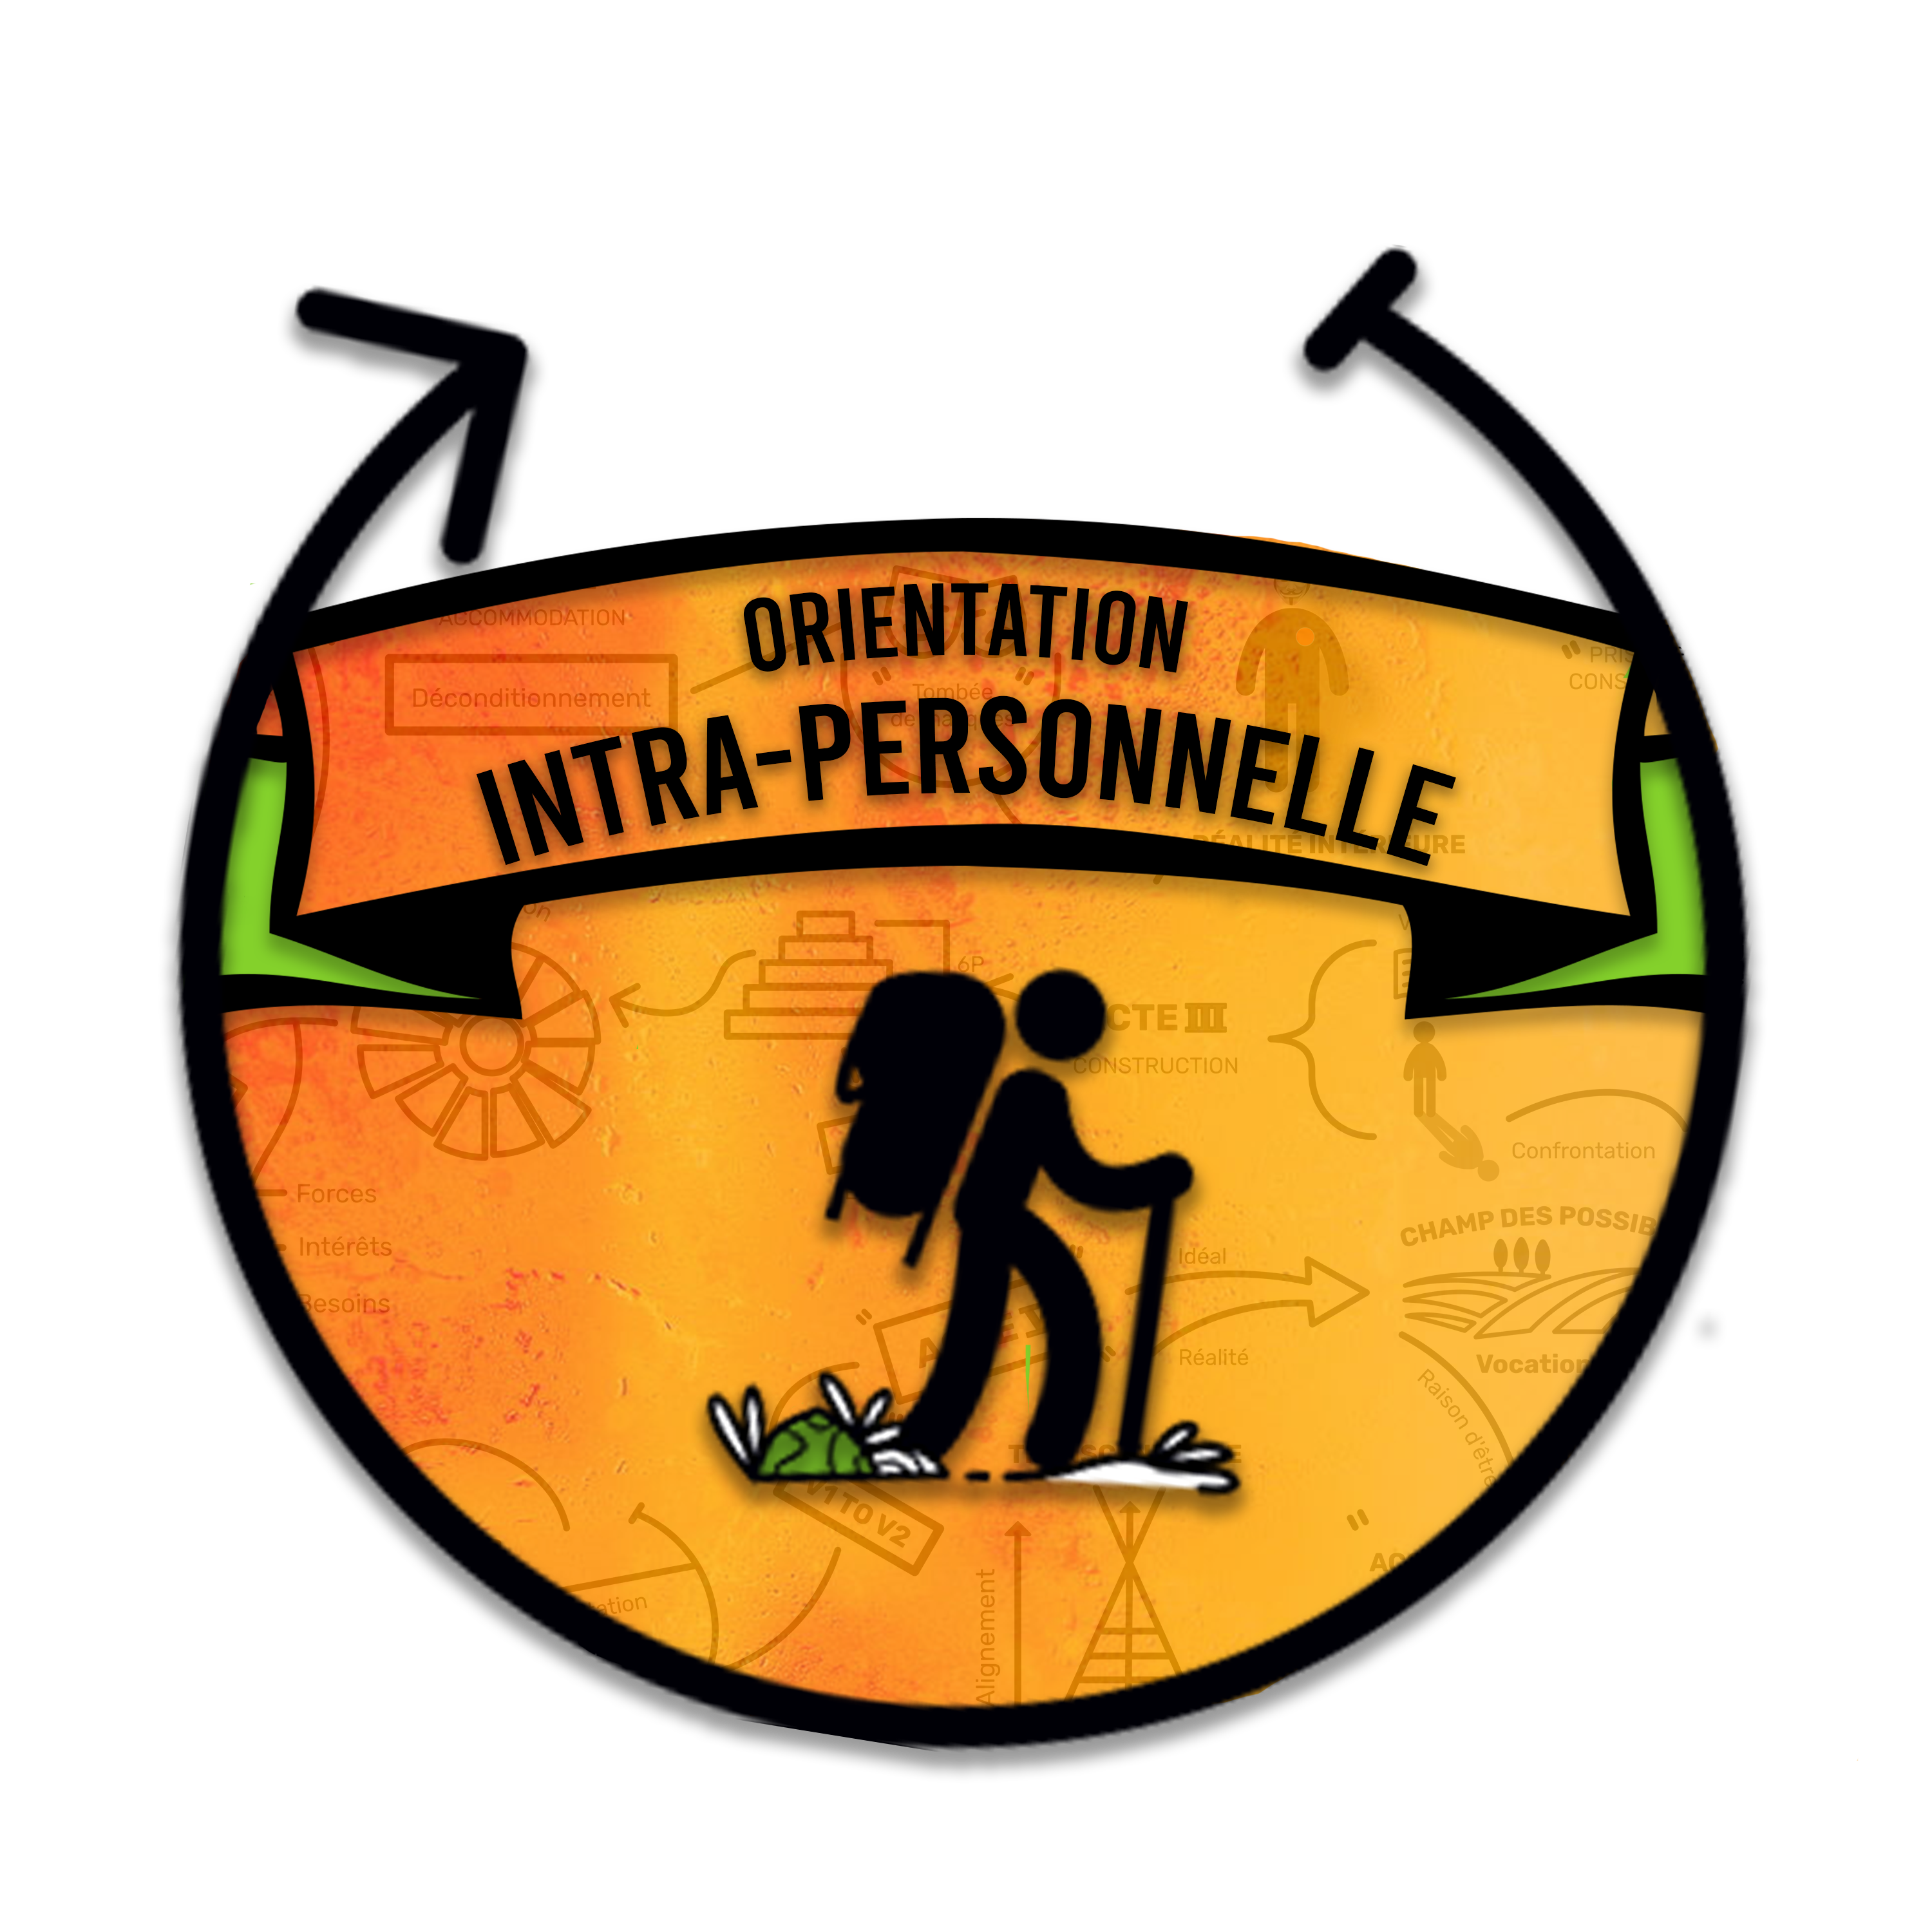 Orientation Intra-Personnelle